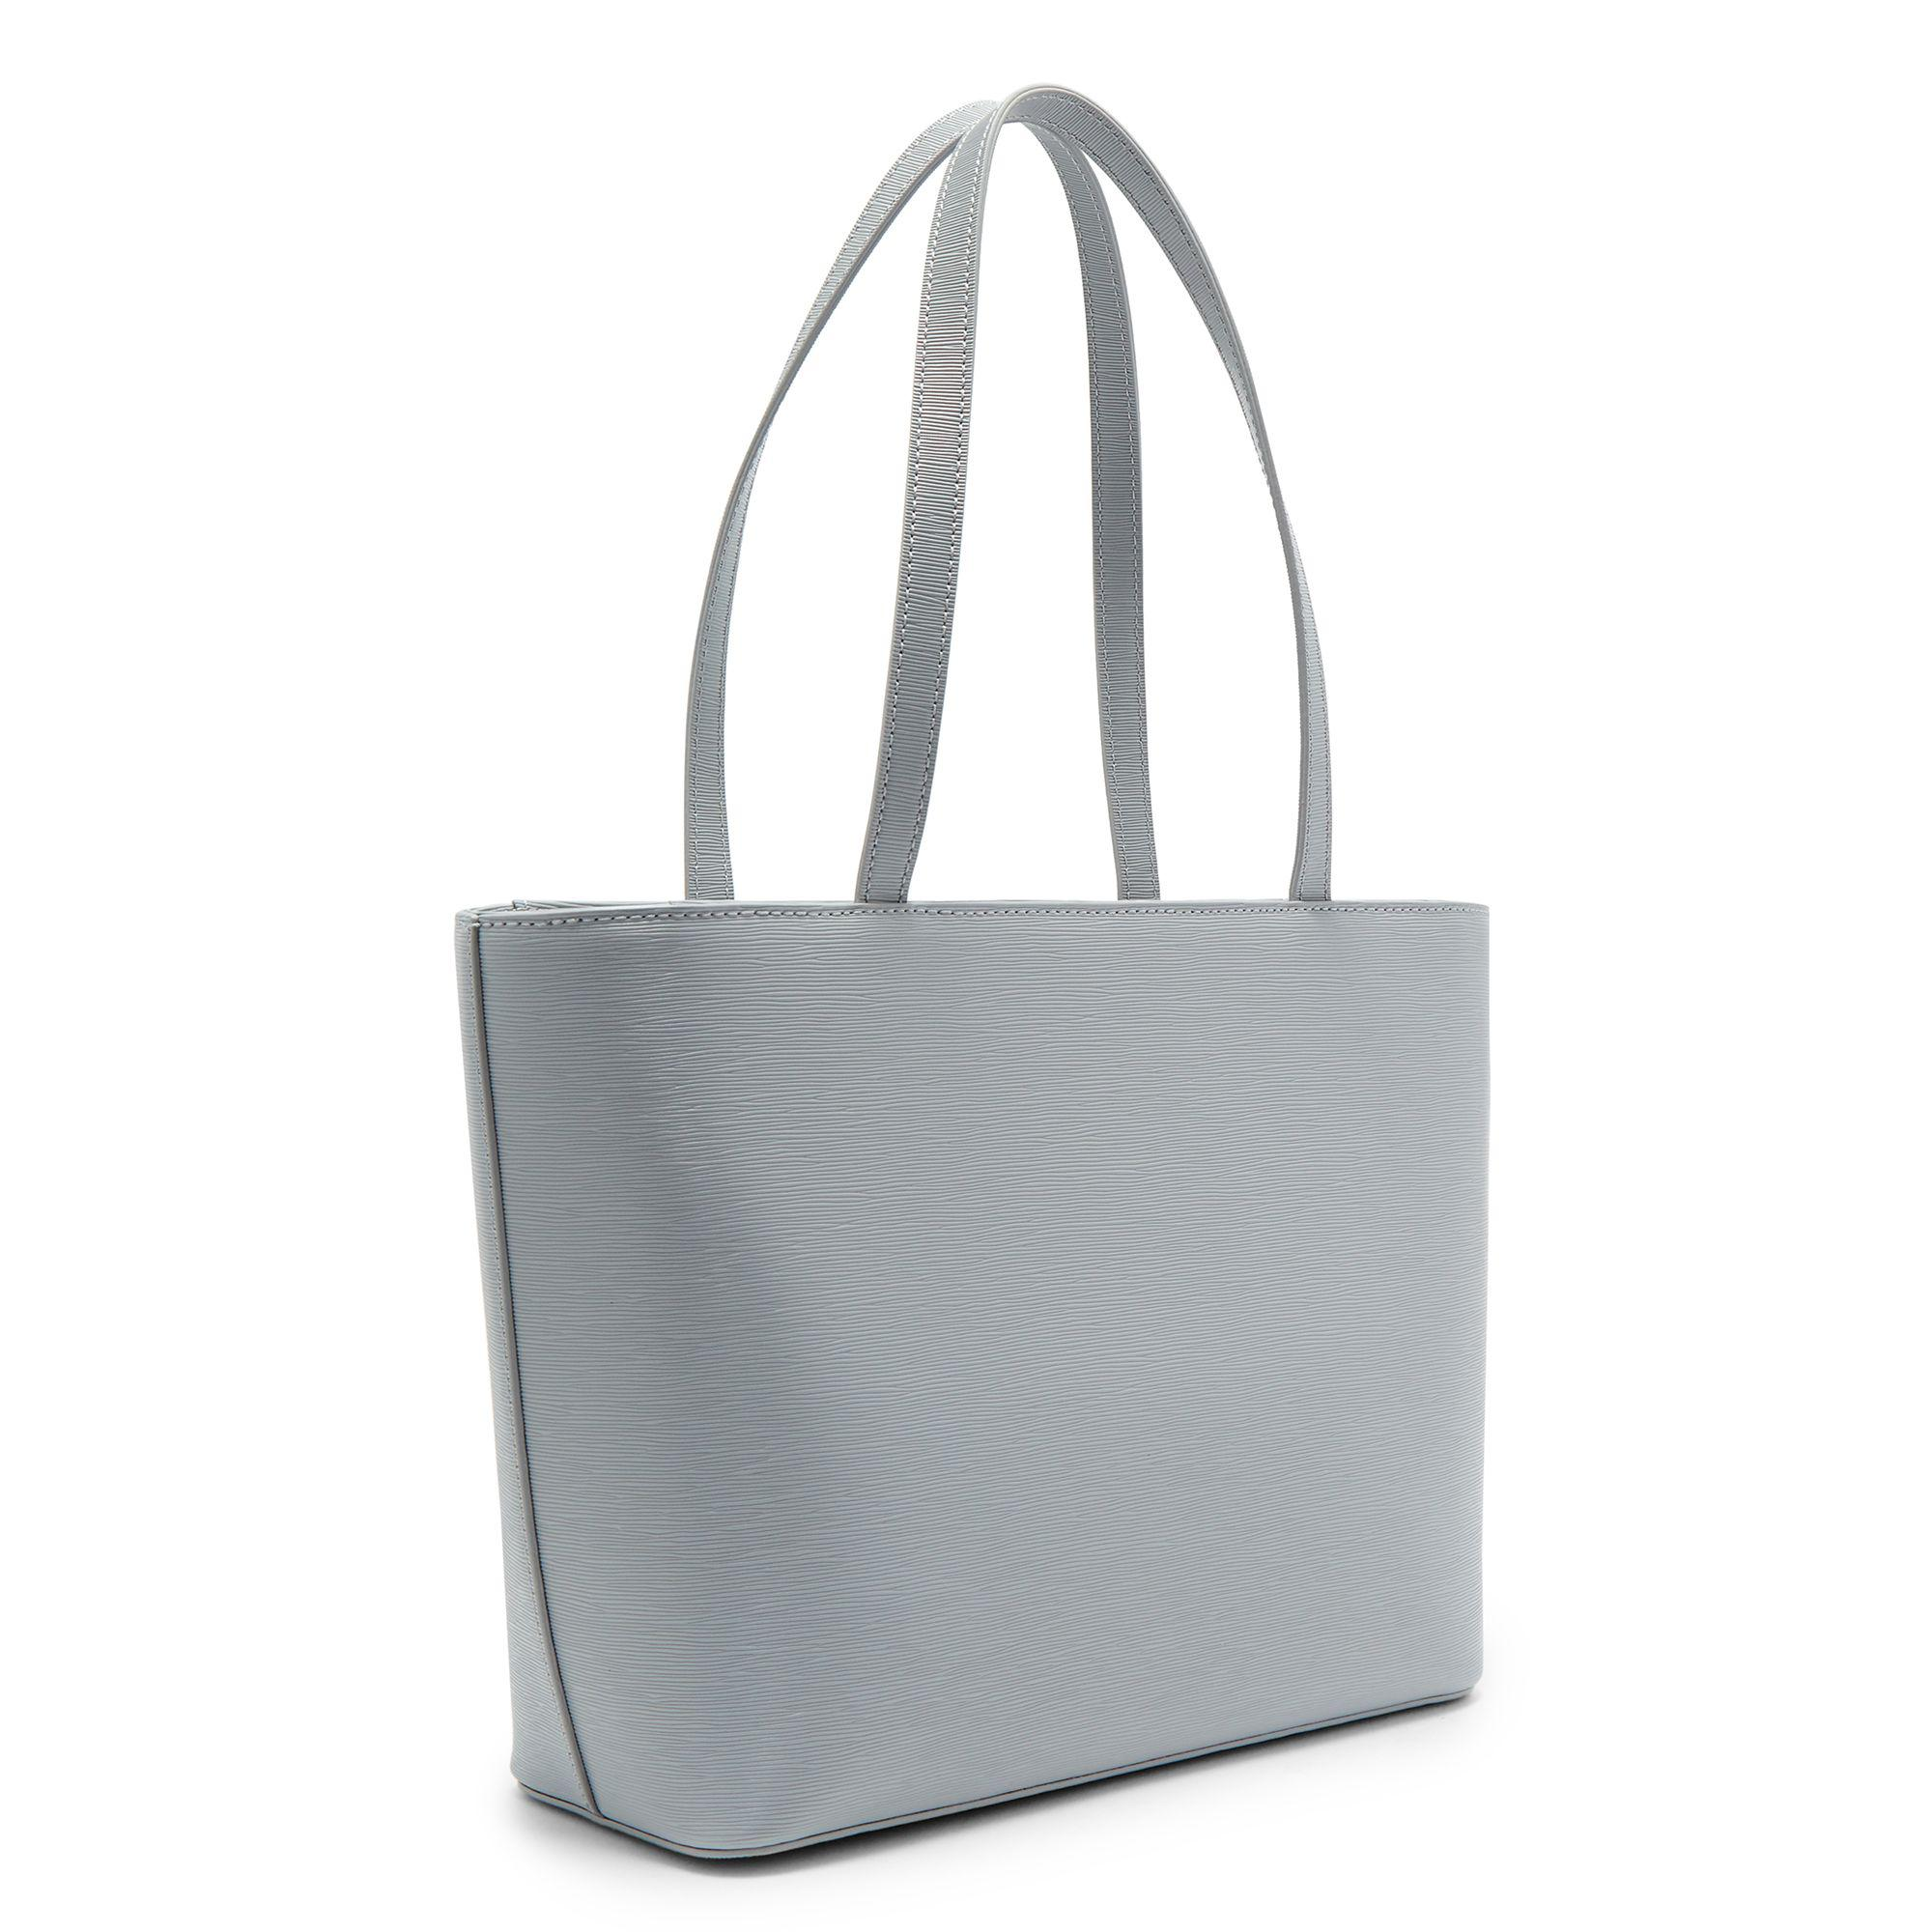 47a3cf6ddfd80f Ted Baker Deanie Bow Leather Small Shopper Bag in Gray - Lyst